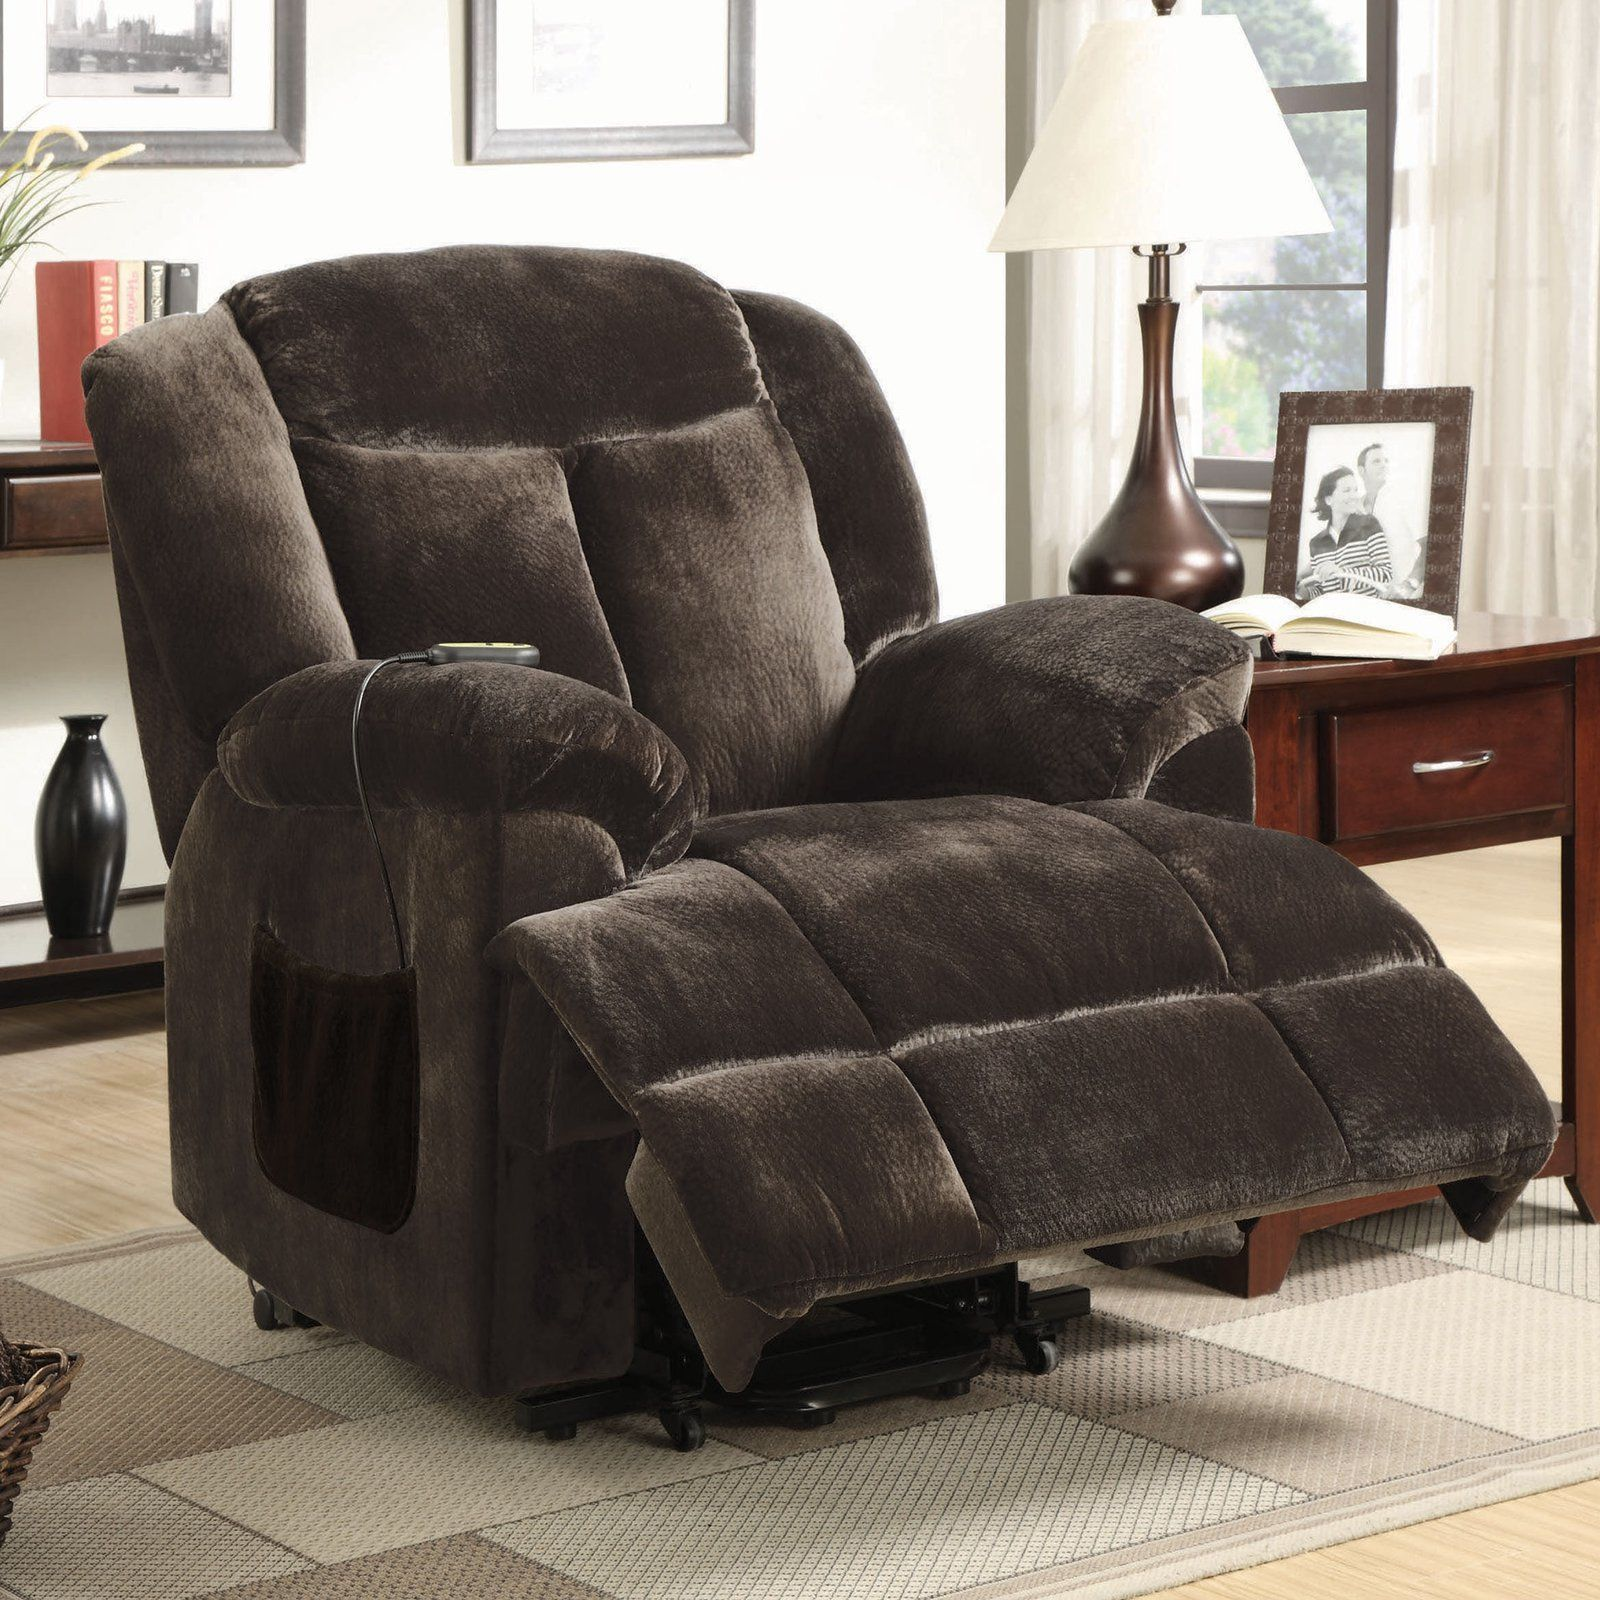 Excellent Coaster Maple Valley Recliner 600173 Products Recliner Gmtry Best Dining Table And Chair Ideas Images Gmtryco